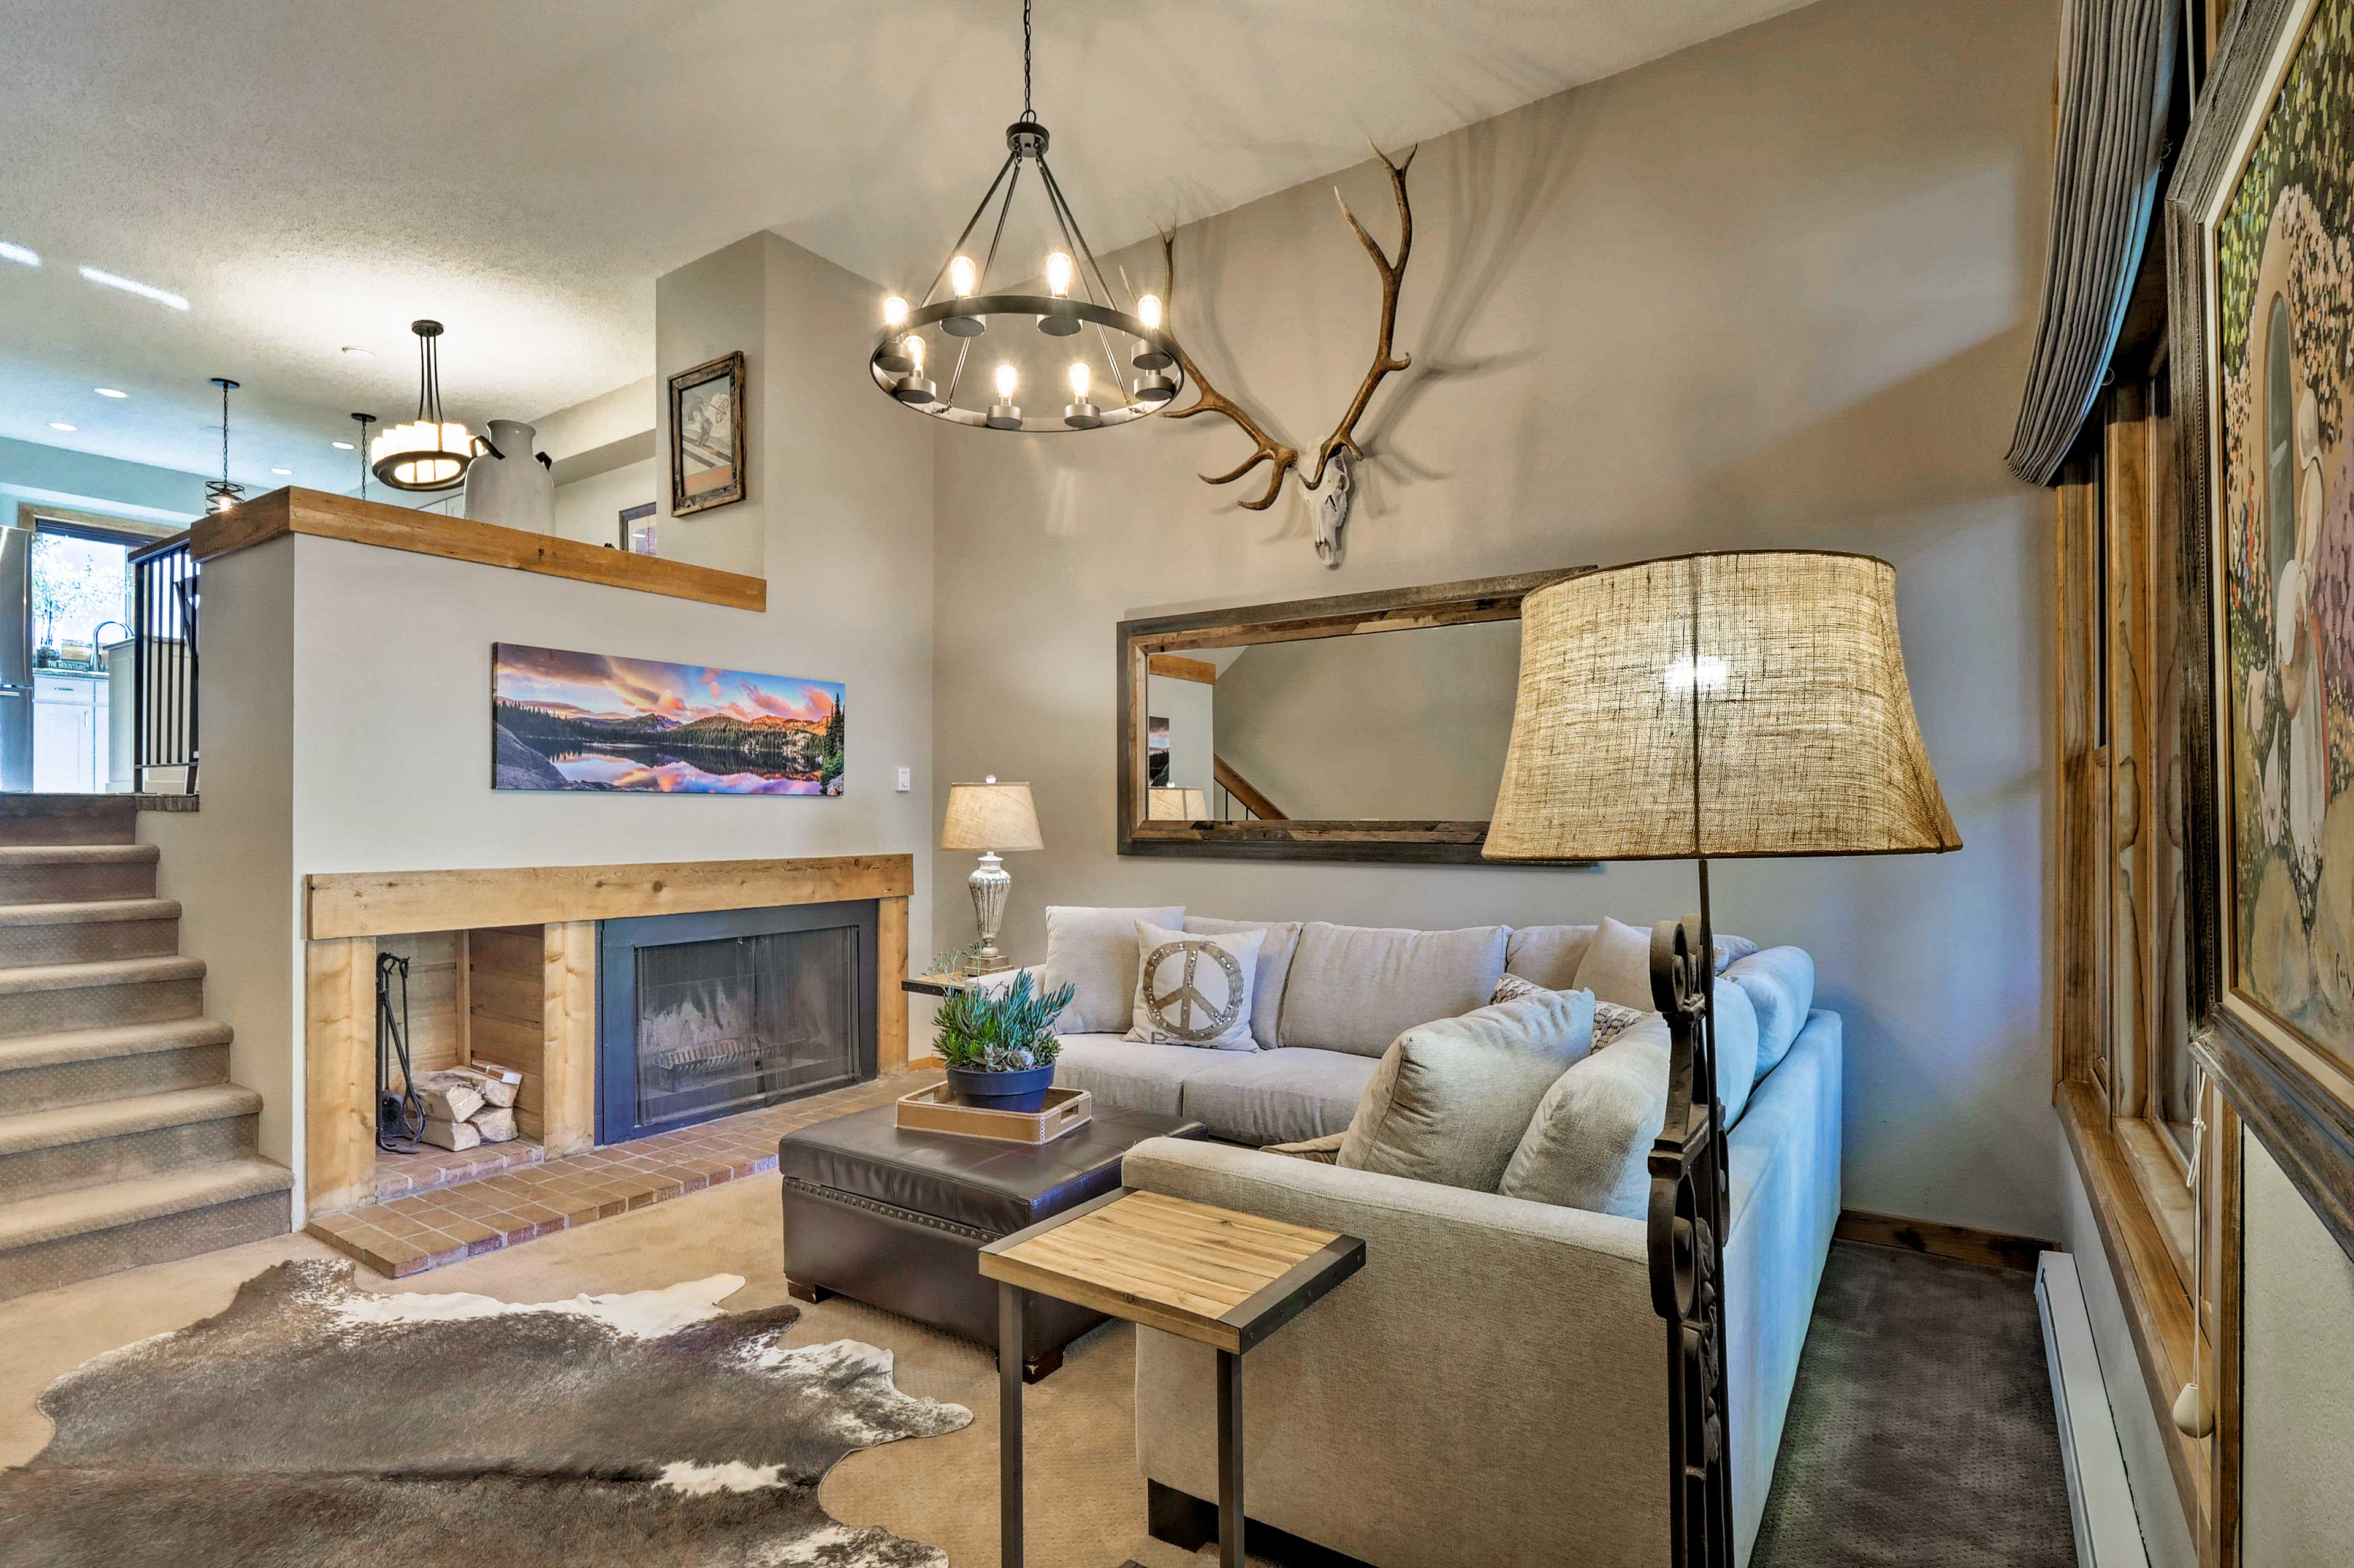 This 2-bedroom, 2.5-bathroom townhome comfortably sleeps up to 8 guests.